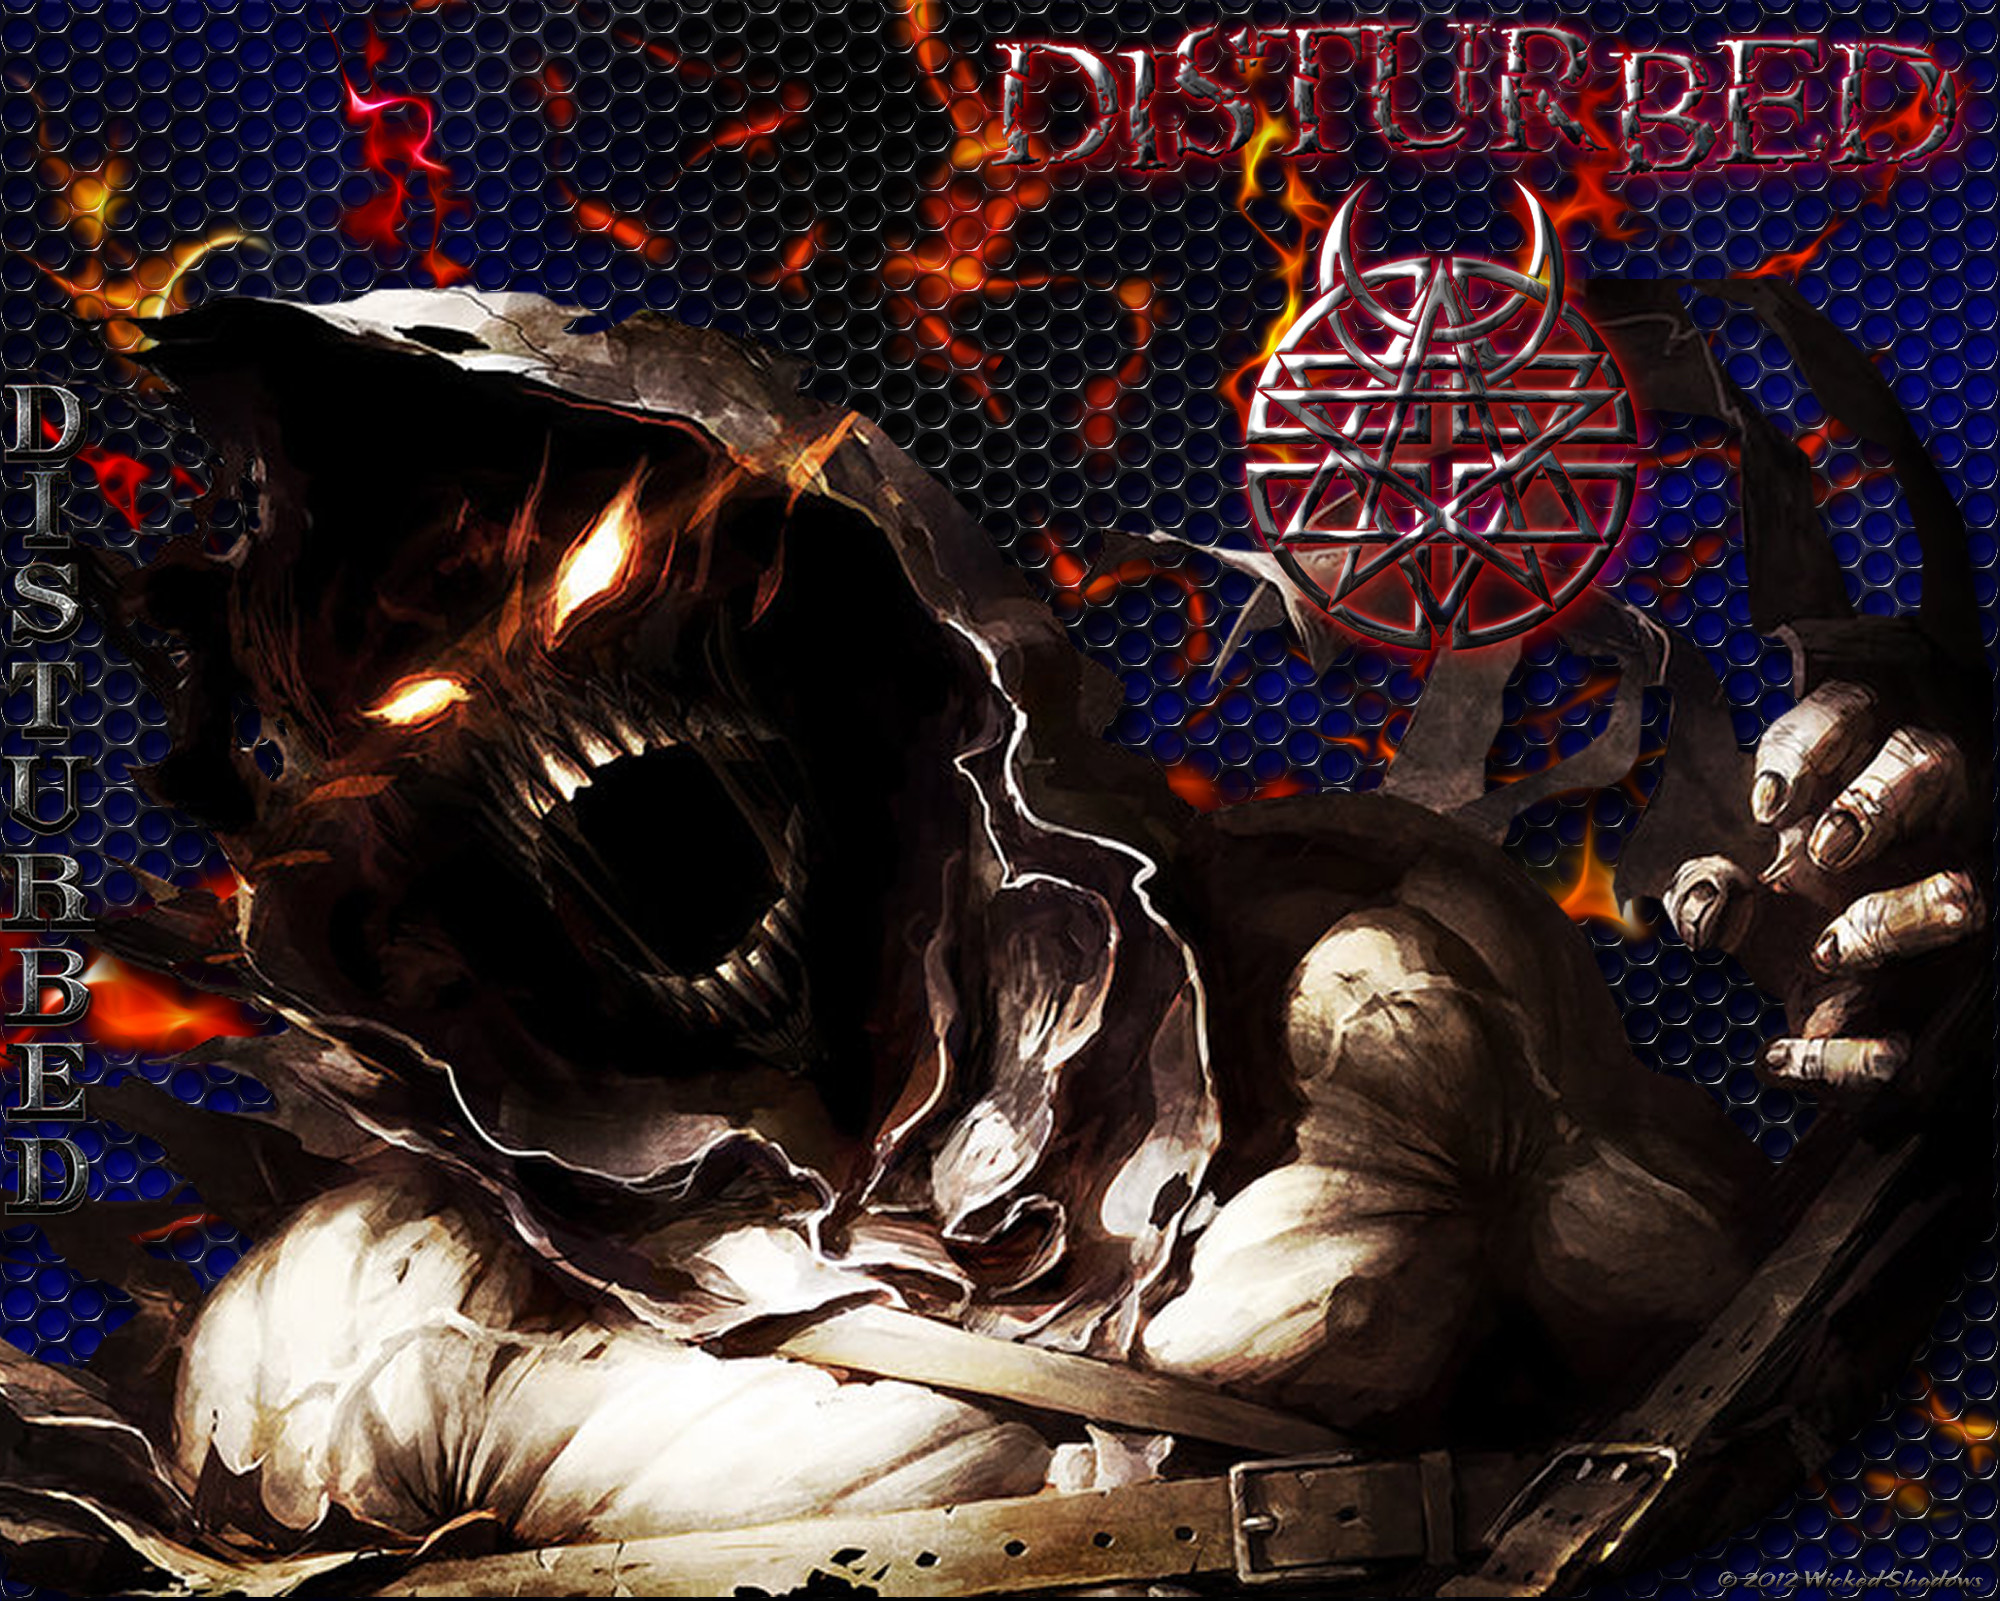 2000x1601 Disturbed Heavy Metal Wallpaper